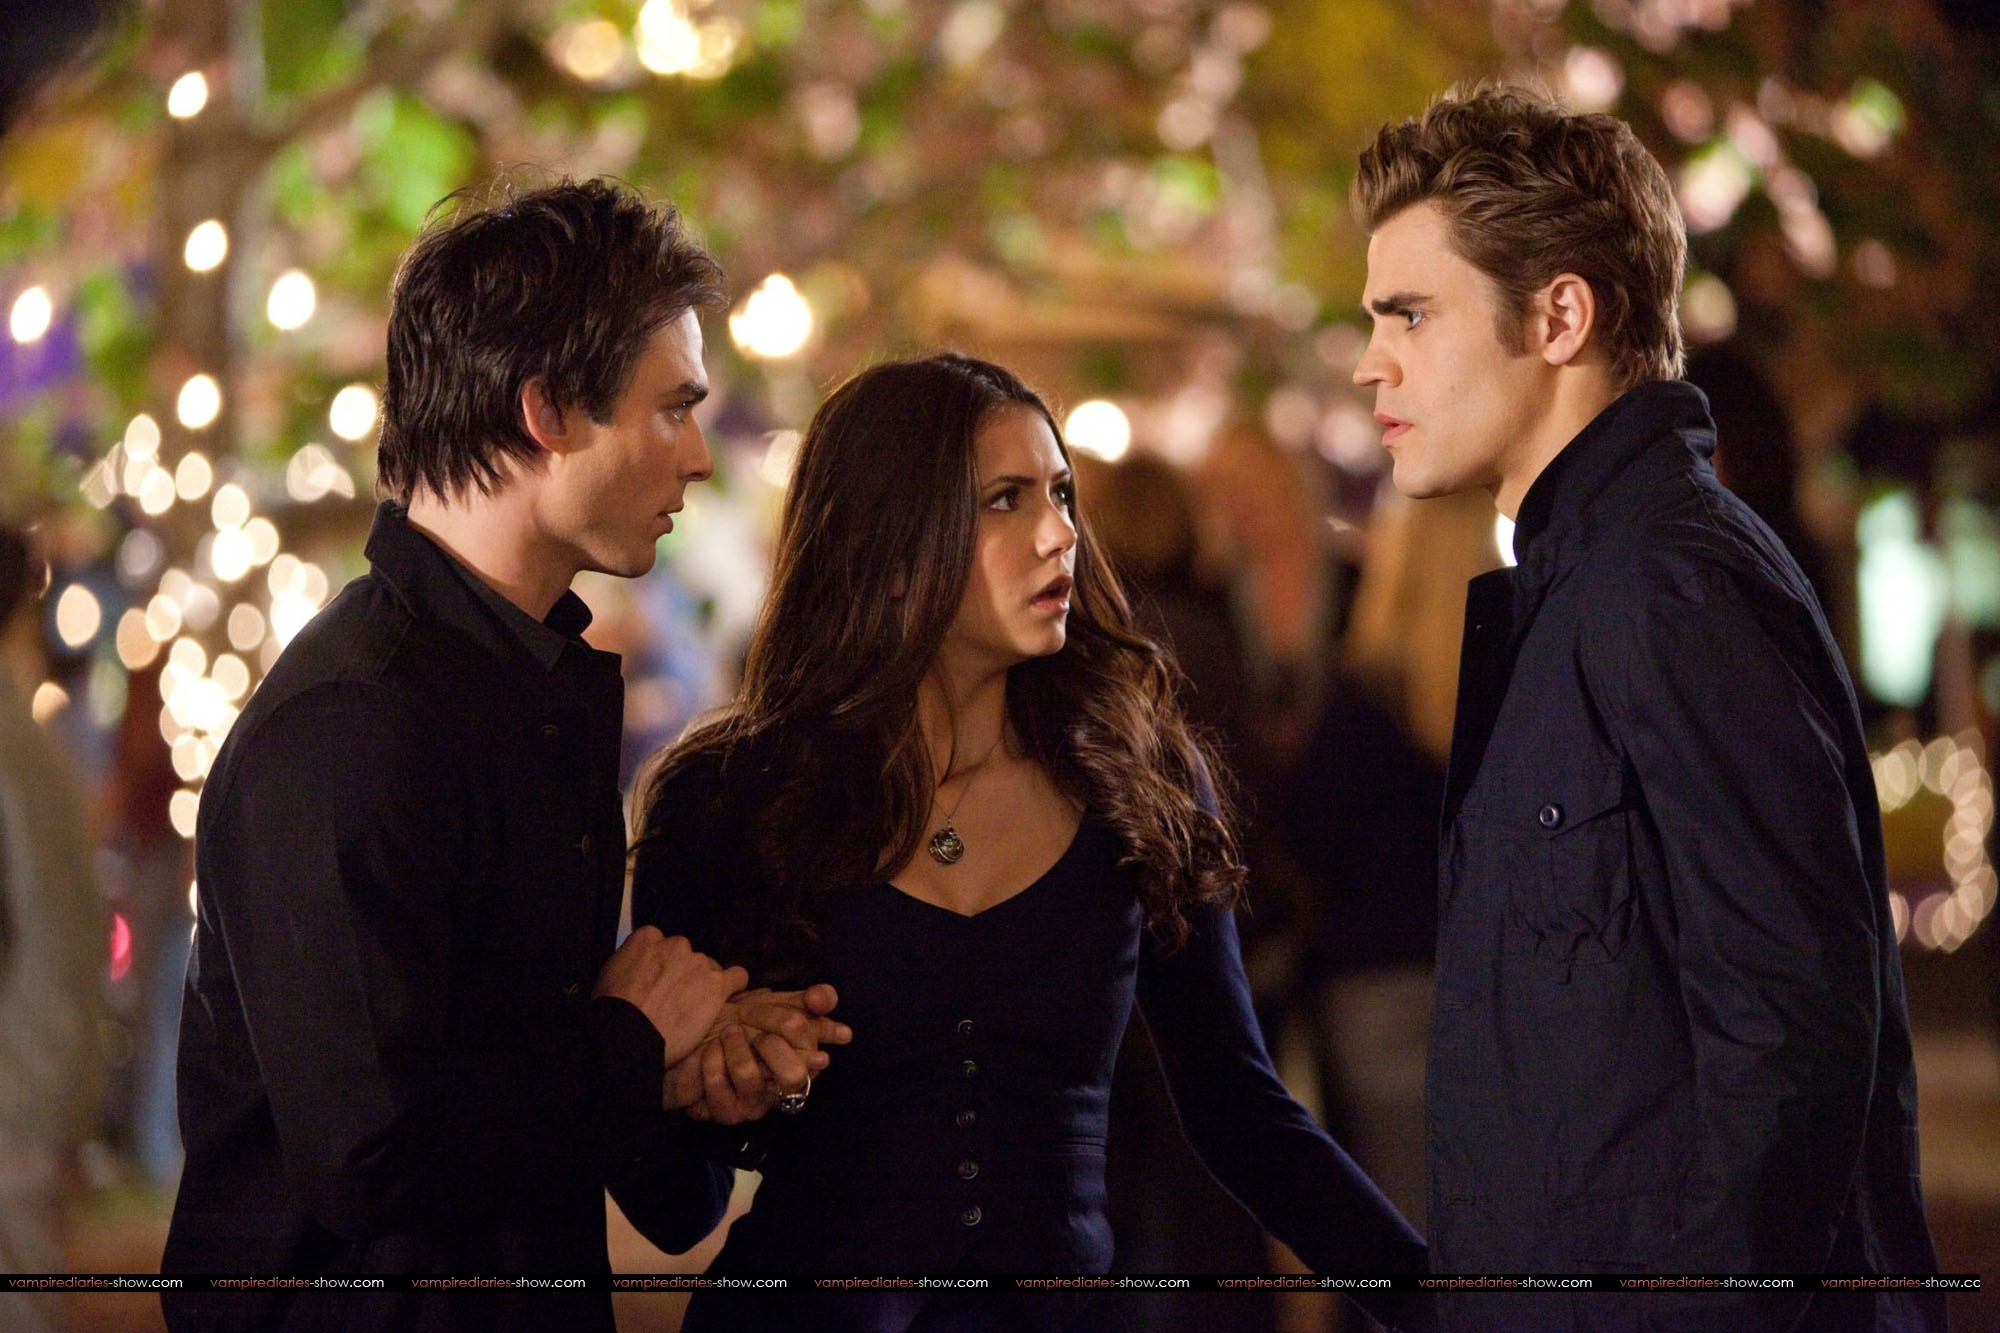 http://images2.fanpop.com/image/photos/11900000/DE-hands-in-hands-finale-HQ-damon-and-elena-11963311-2000-1333.jpg